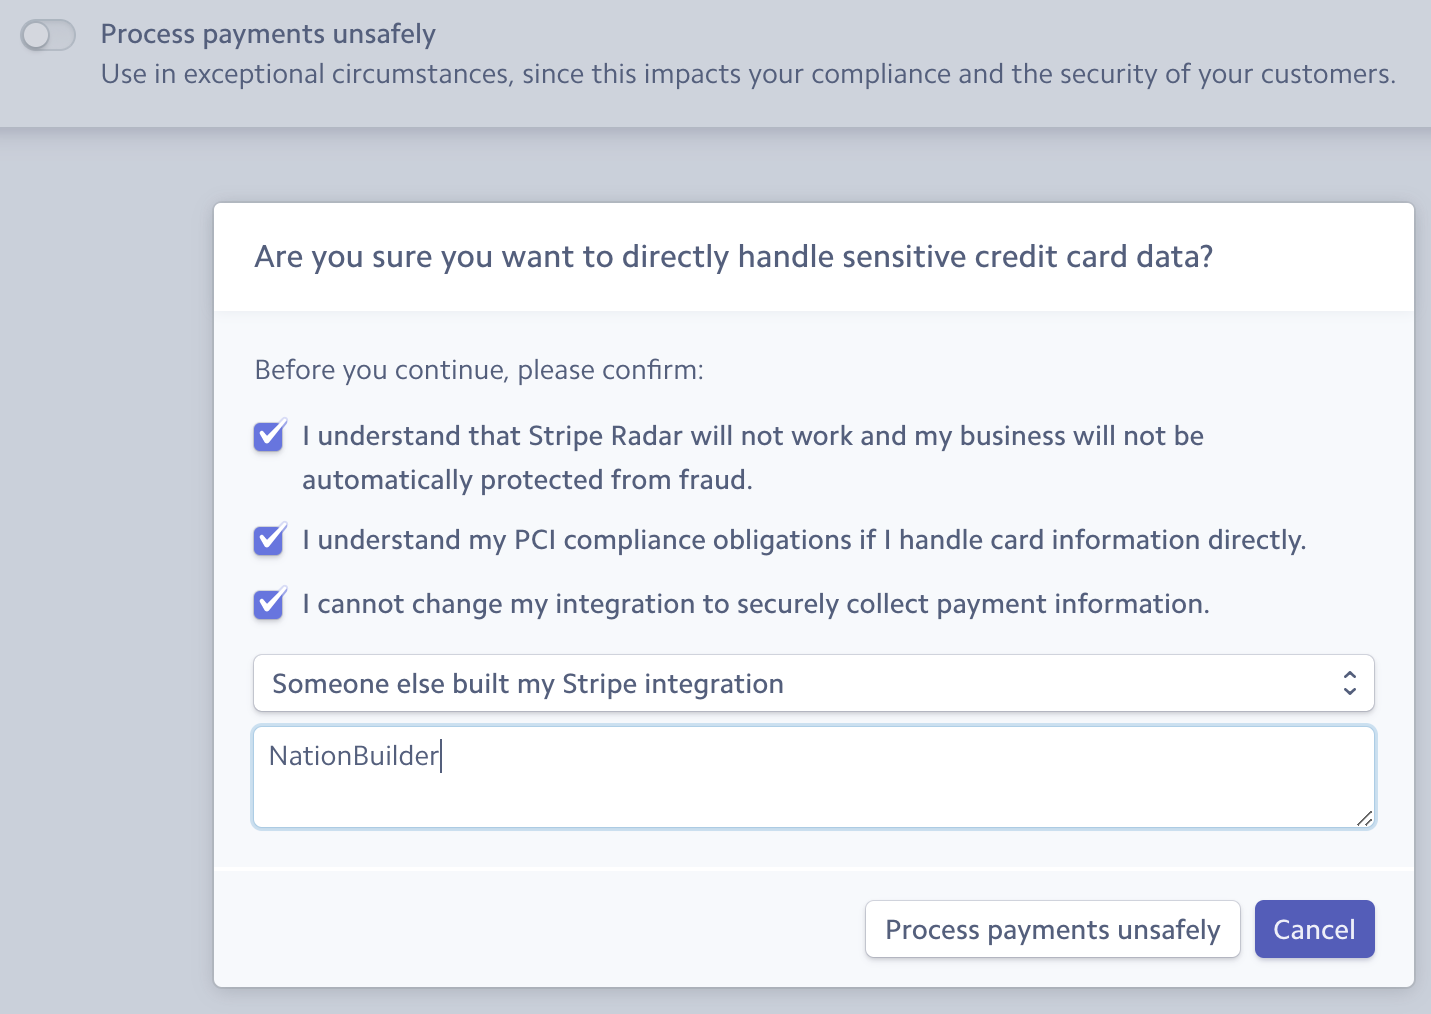 process_payments_unsafely_prompt.png